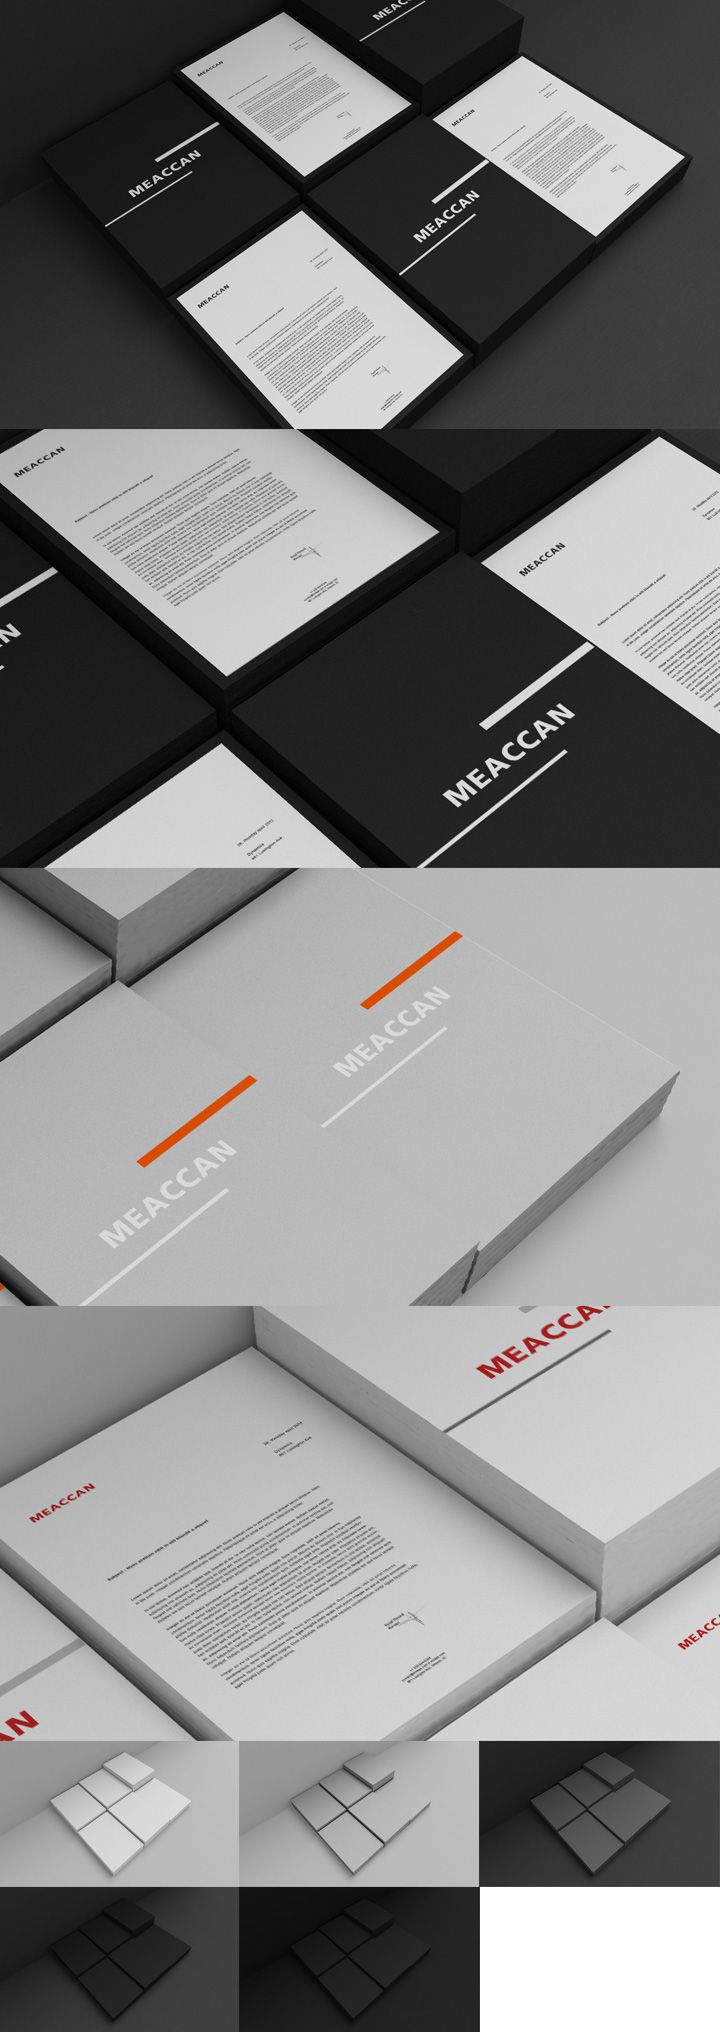 Free – Collection 6 - Mock Up 1 - Letterhead - Creative Particles